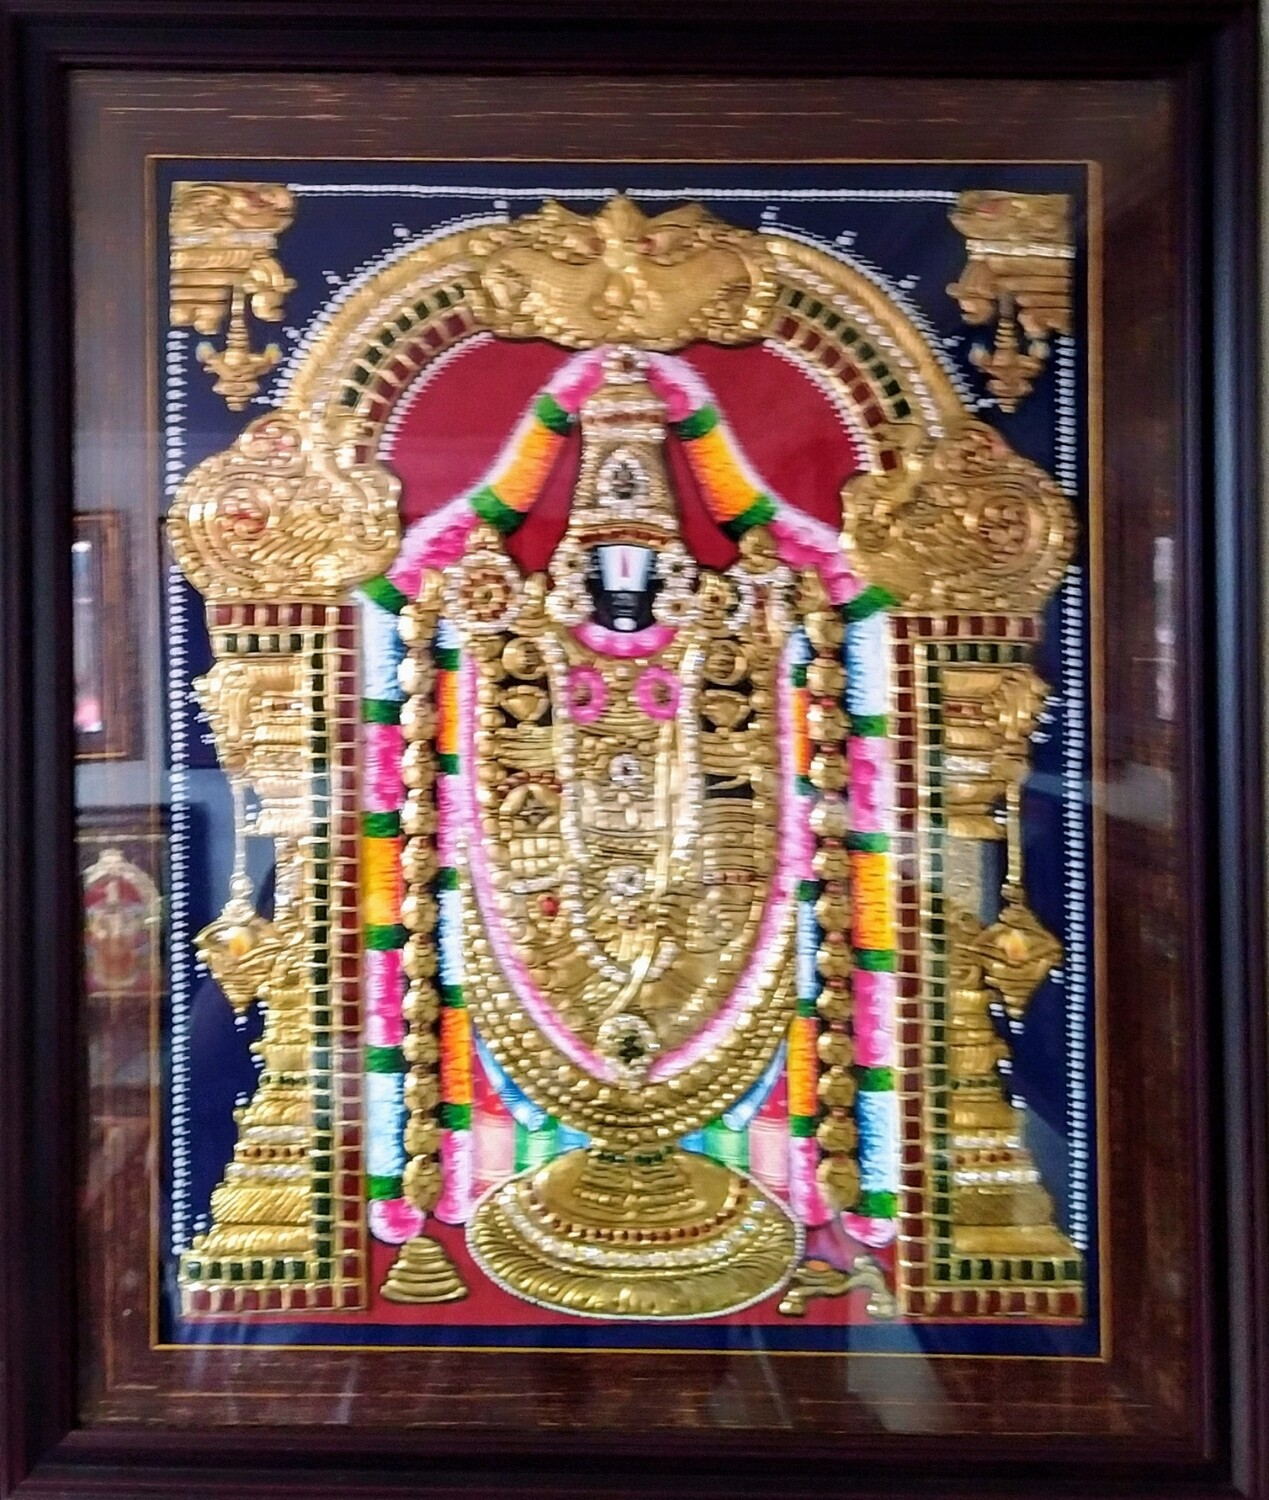 Lord Balaji - Tanjore Art work Gold Foil Frame